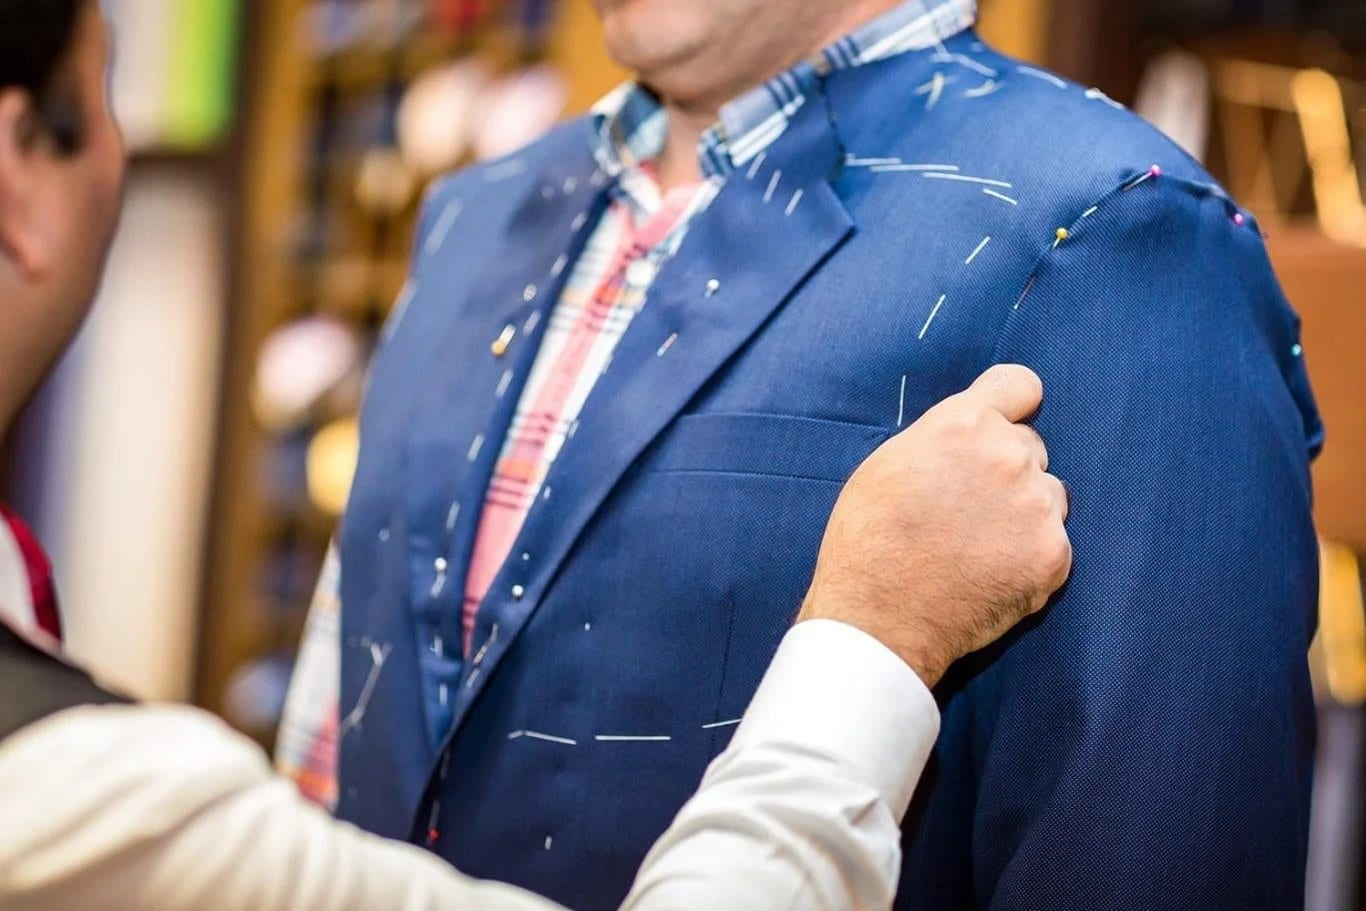 Buying bespoke suits for dummies: What is the process, how long does it take and other questions answered